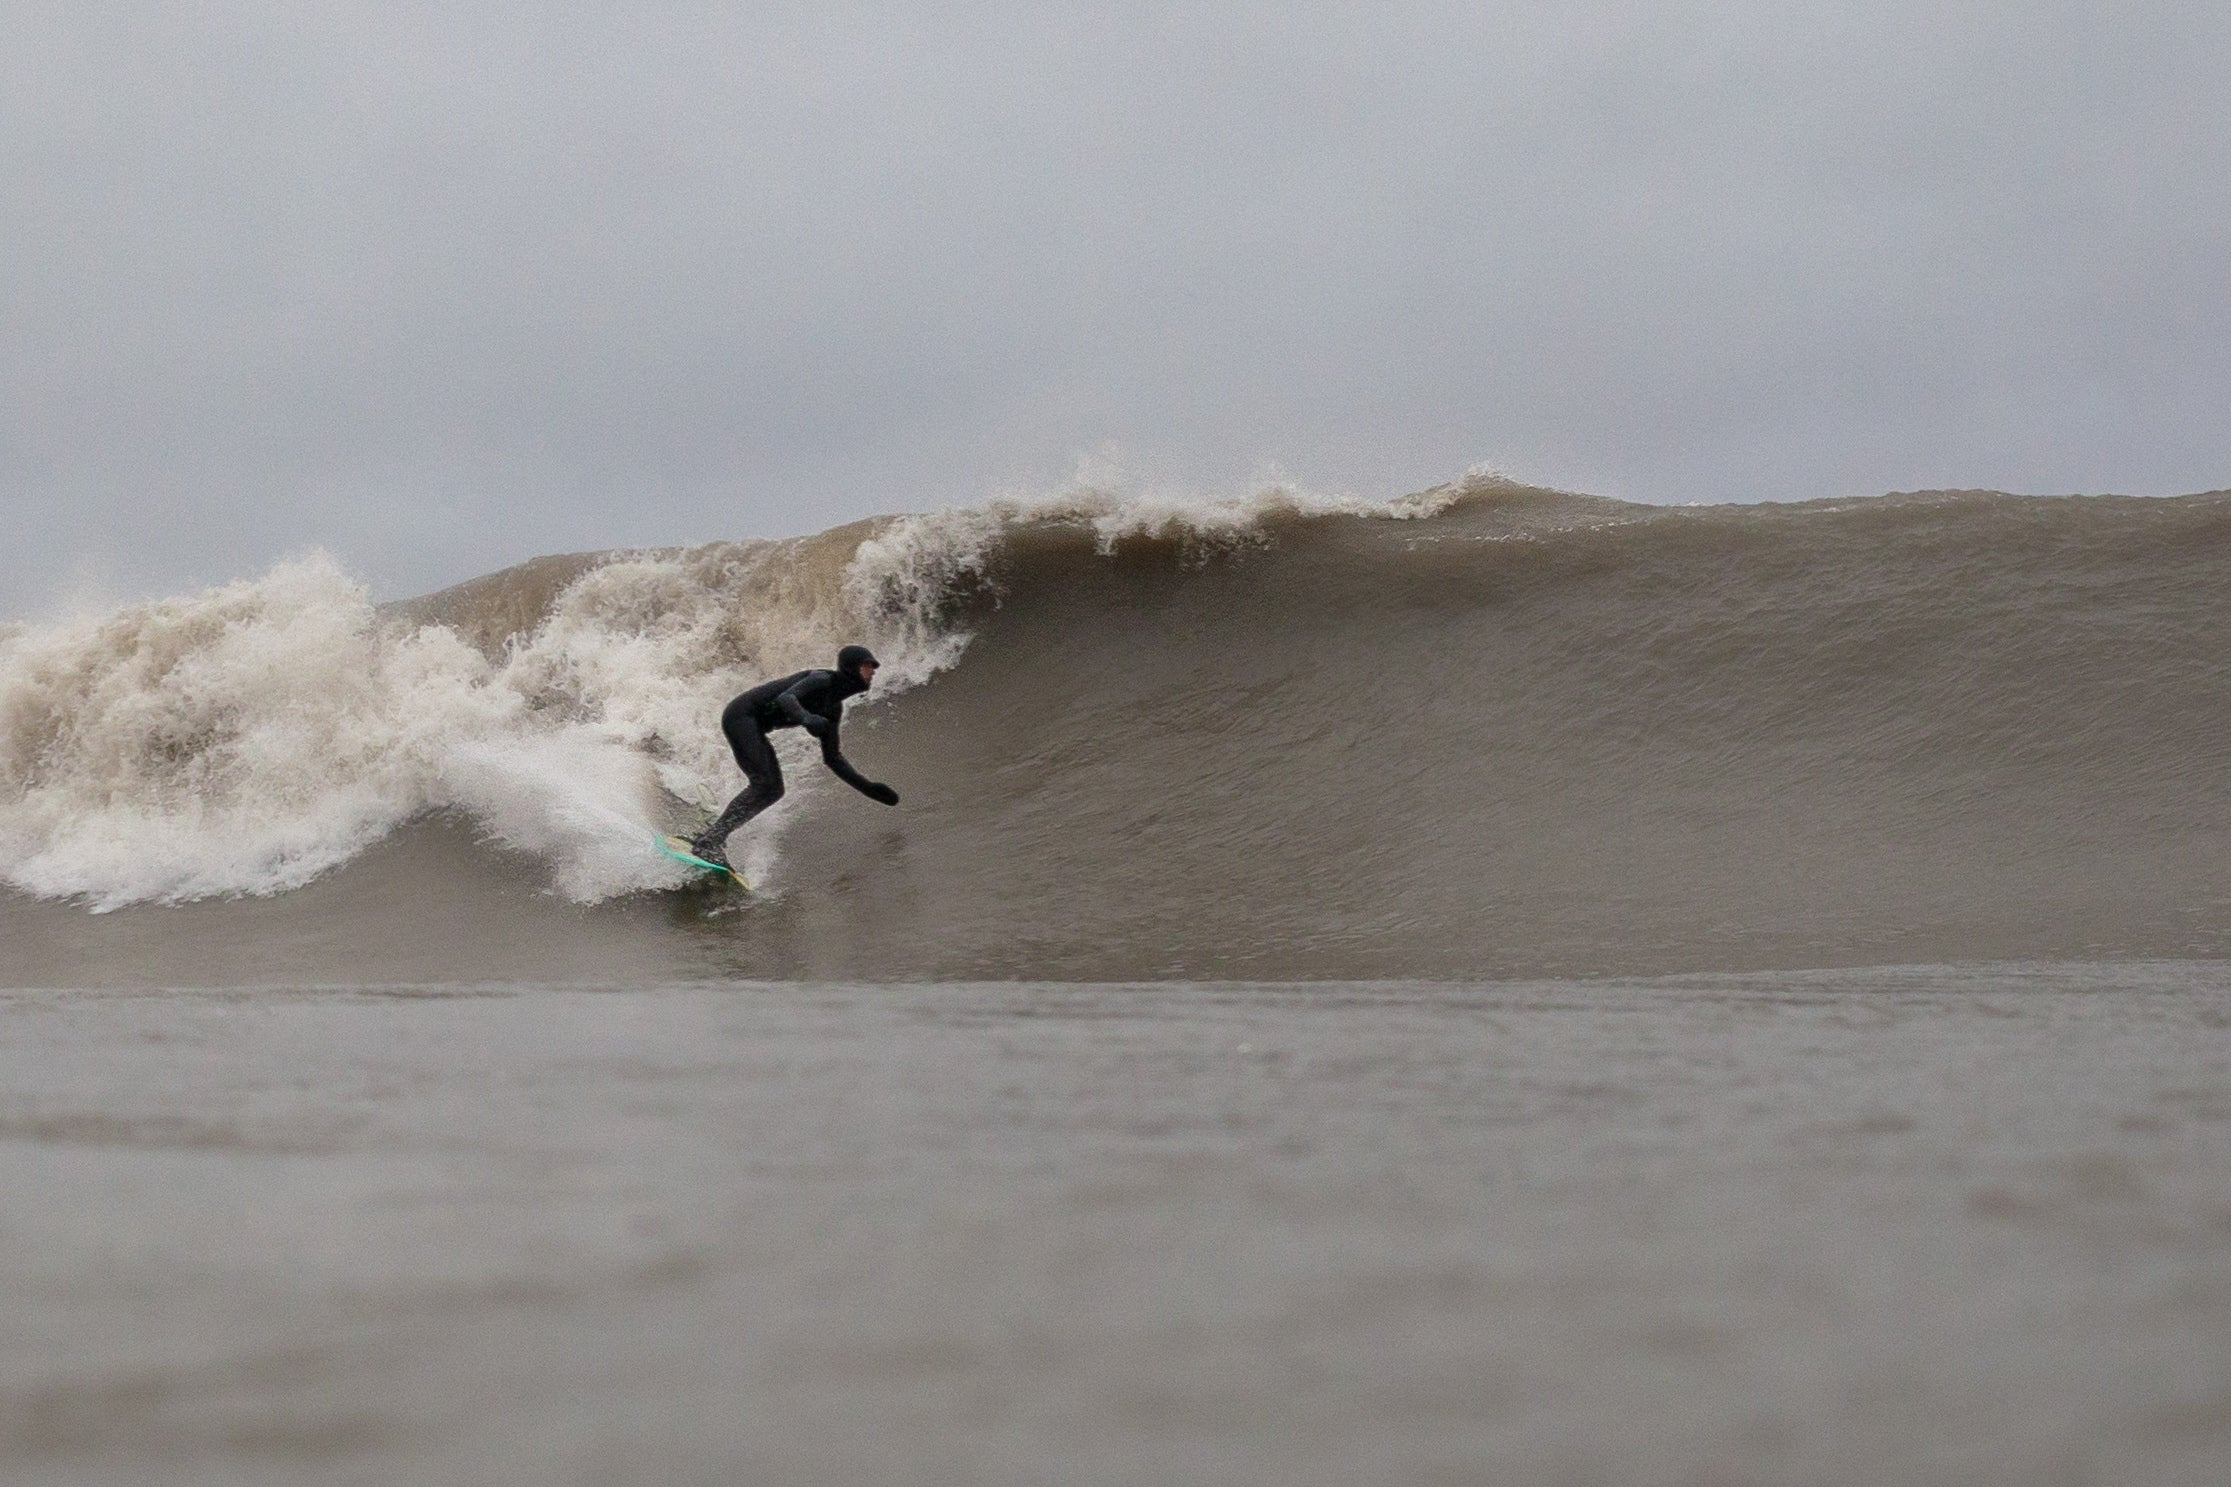 Surfing on Lake Ontario Surf the Greats Great Lakes by Lucas Murnaghan